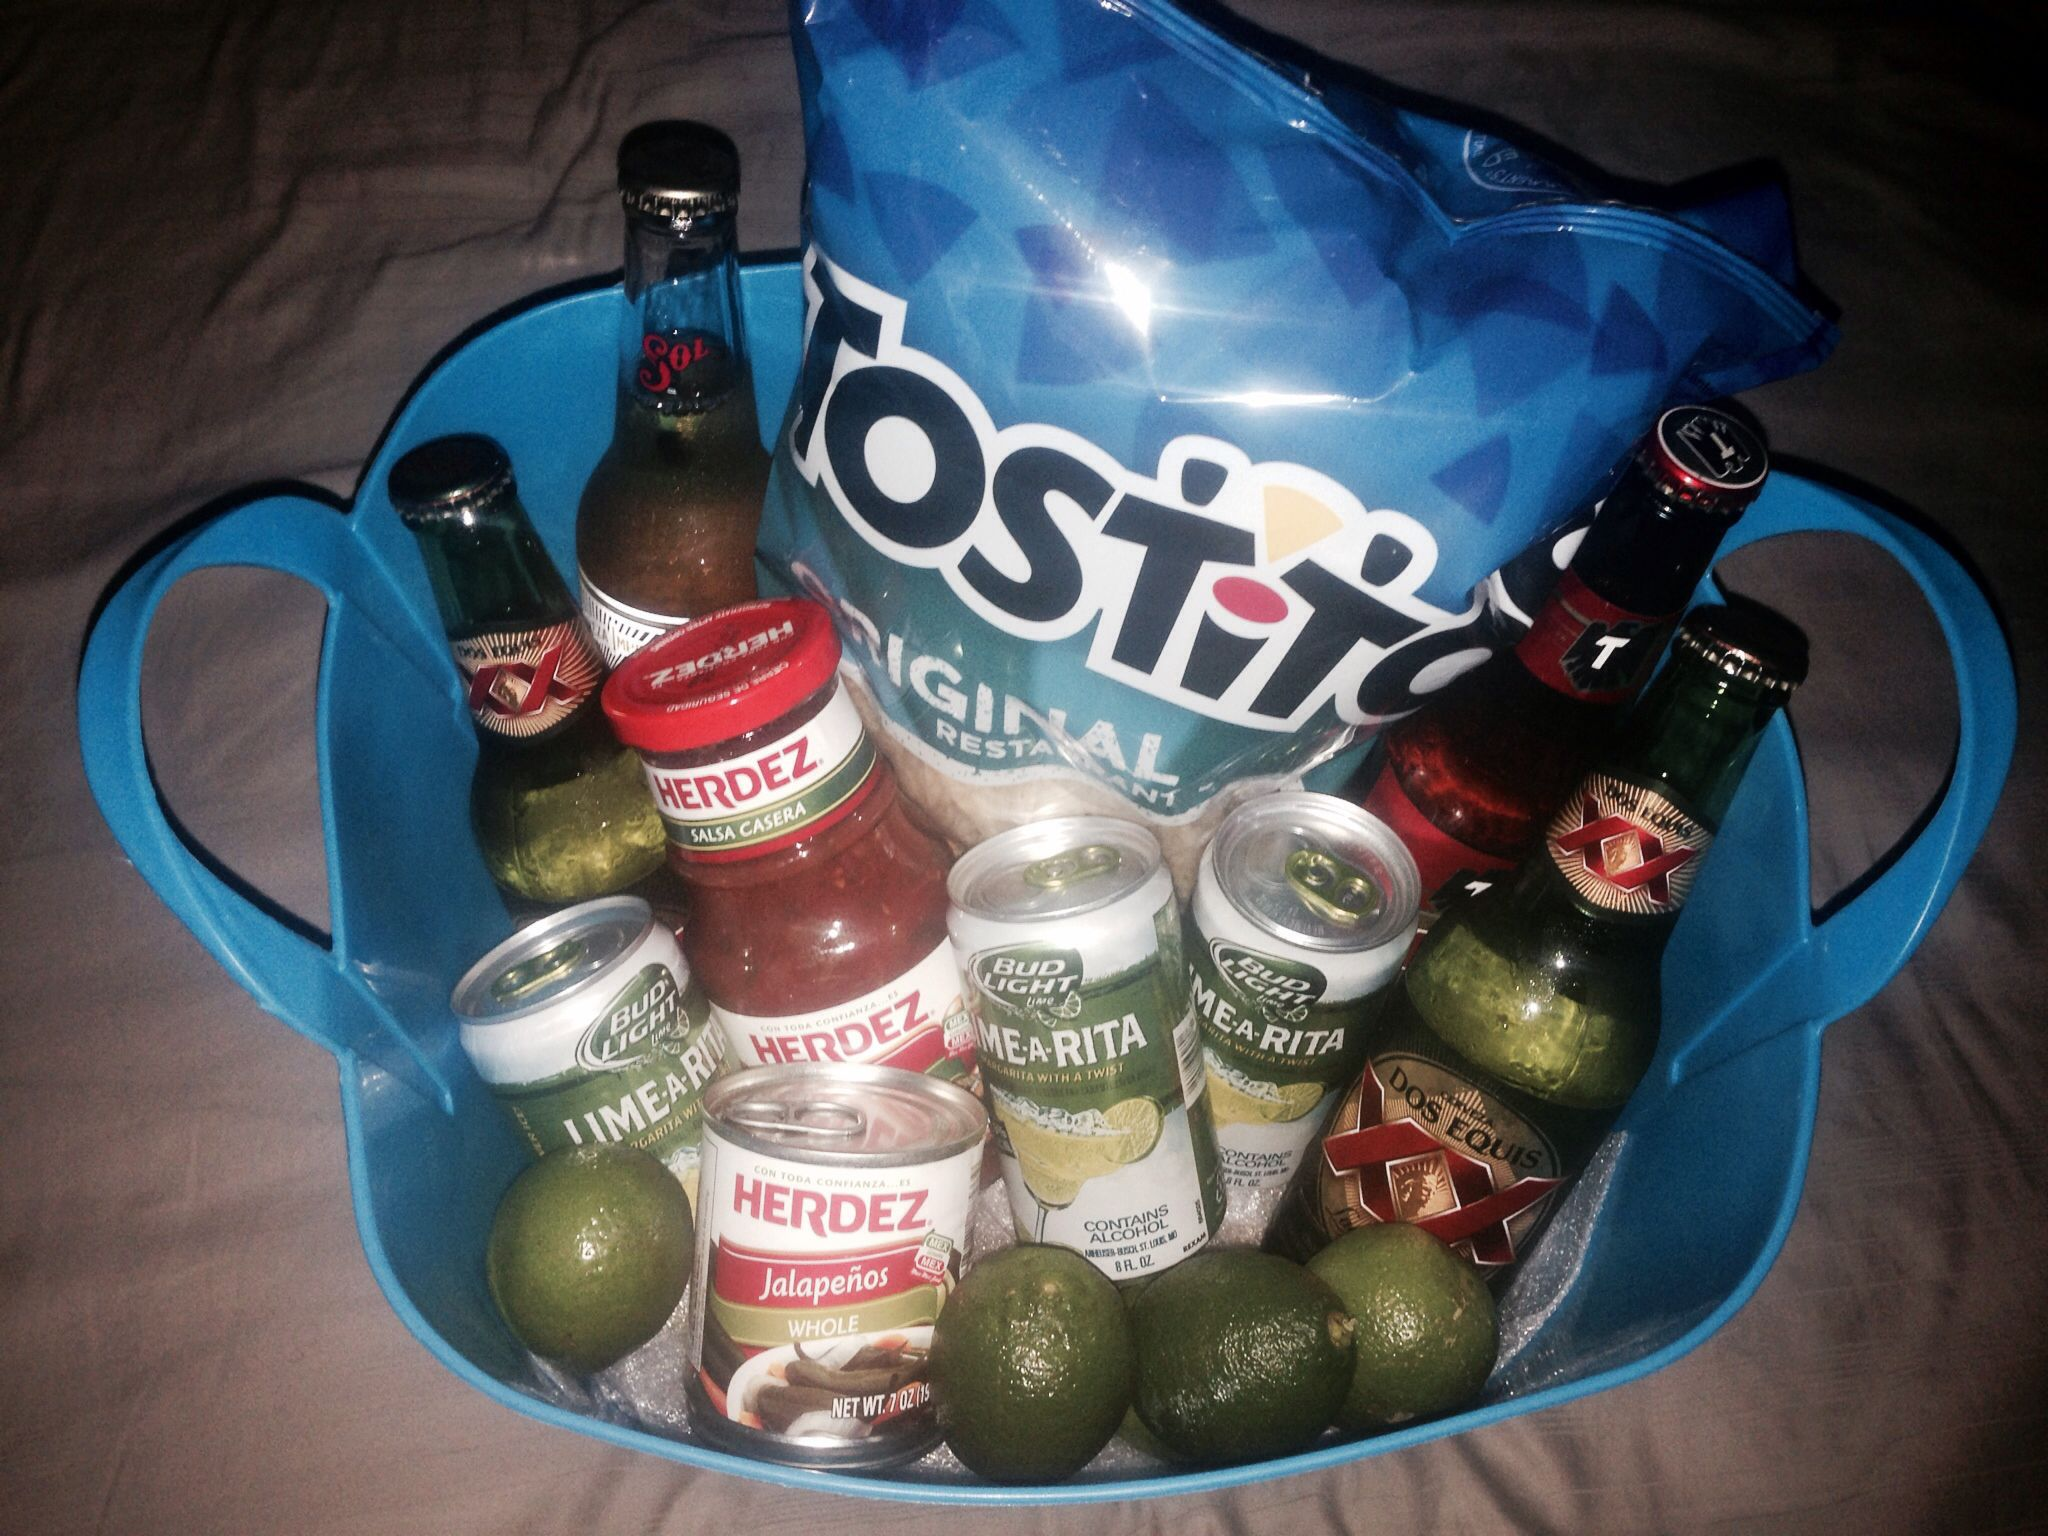 DIY Mexican theme basket I made for my sister. I added some kitchen towels and a few other things but they covered the smaller items, so I took them out for the photo.